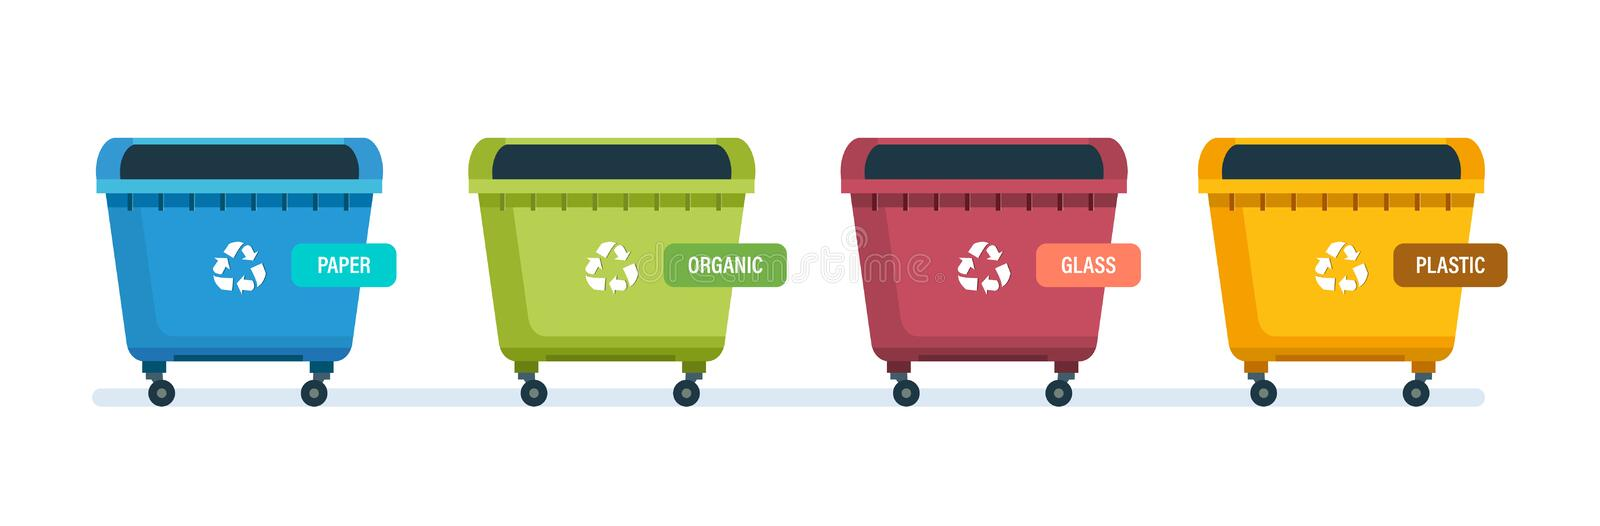 Urns for paper products, food waste, glass and plastic waste. Containers for garbage of different types. Urns for paper products, food waste, glass and plastic stock illustration